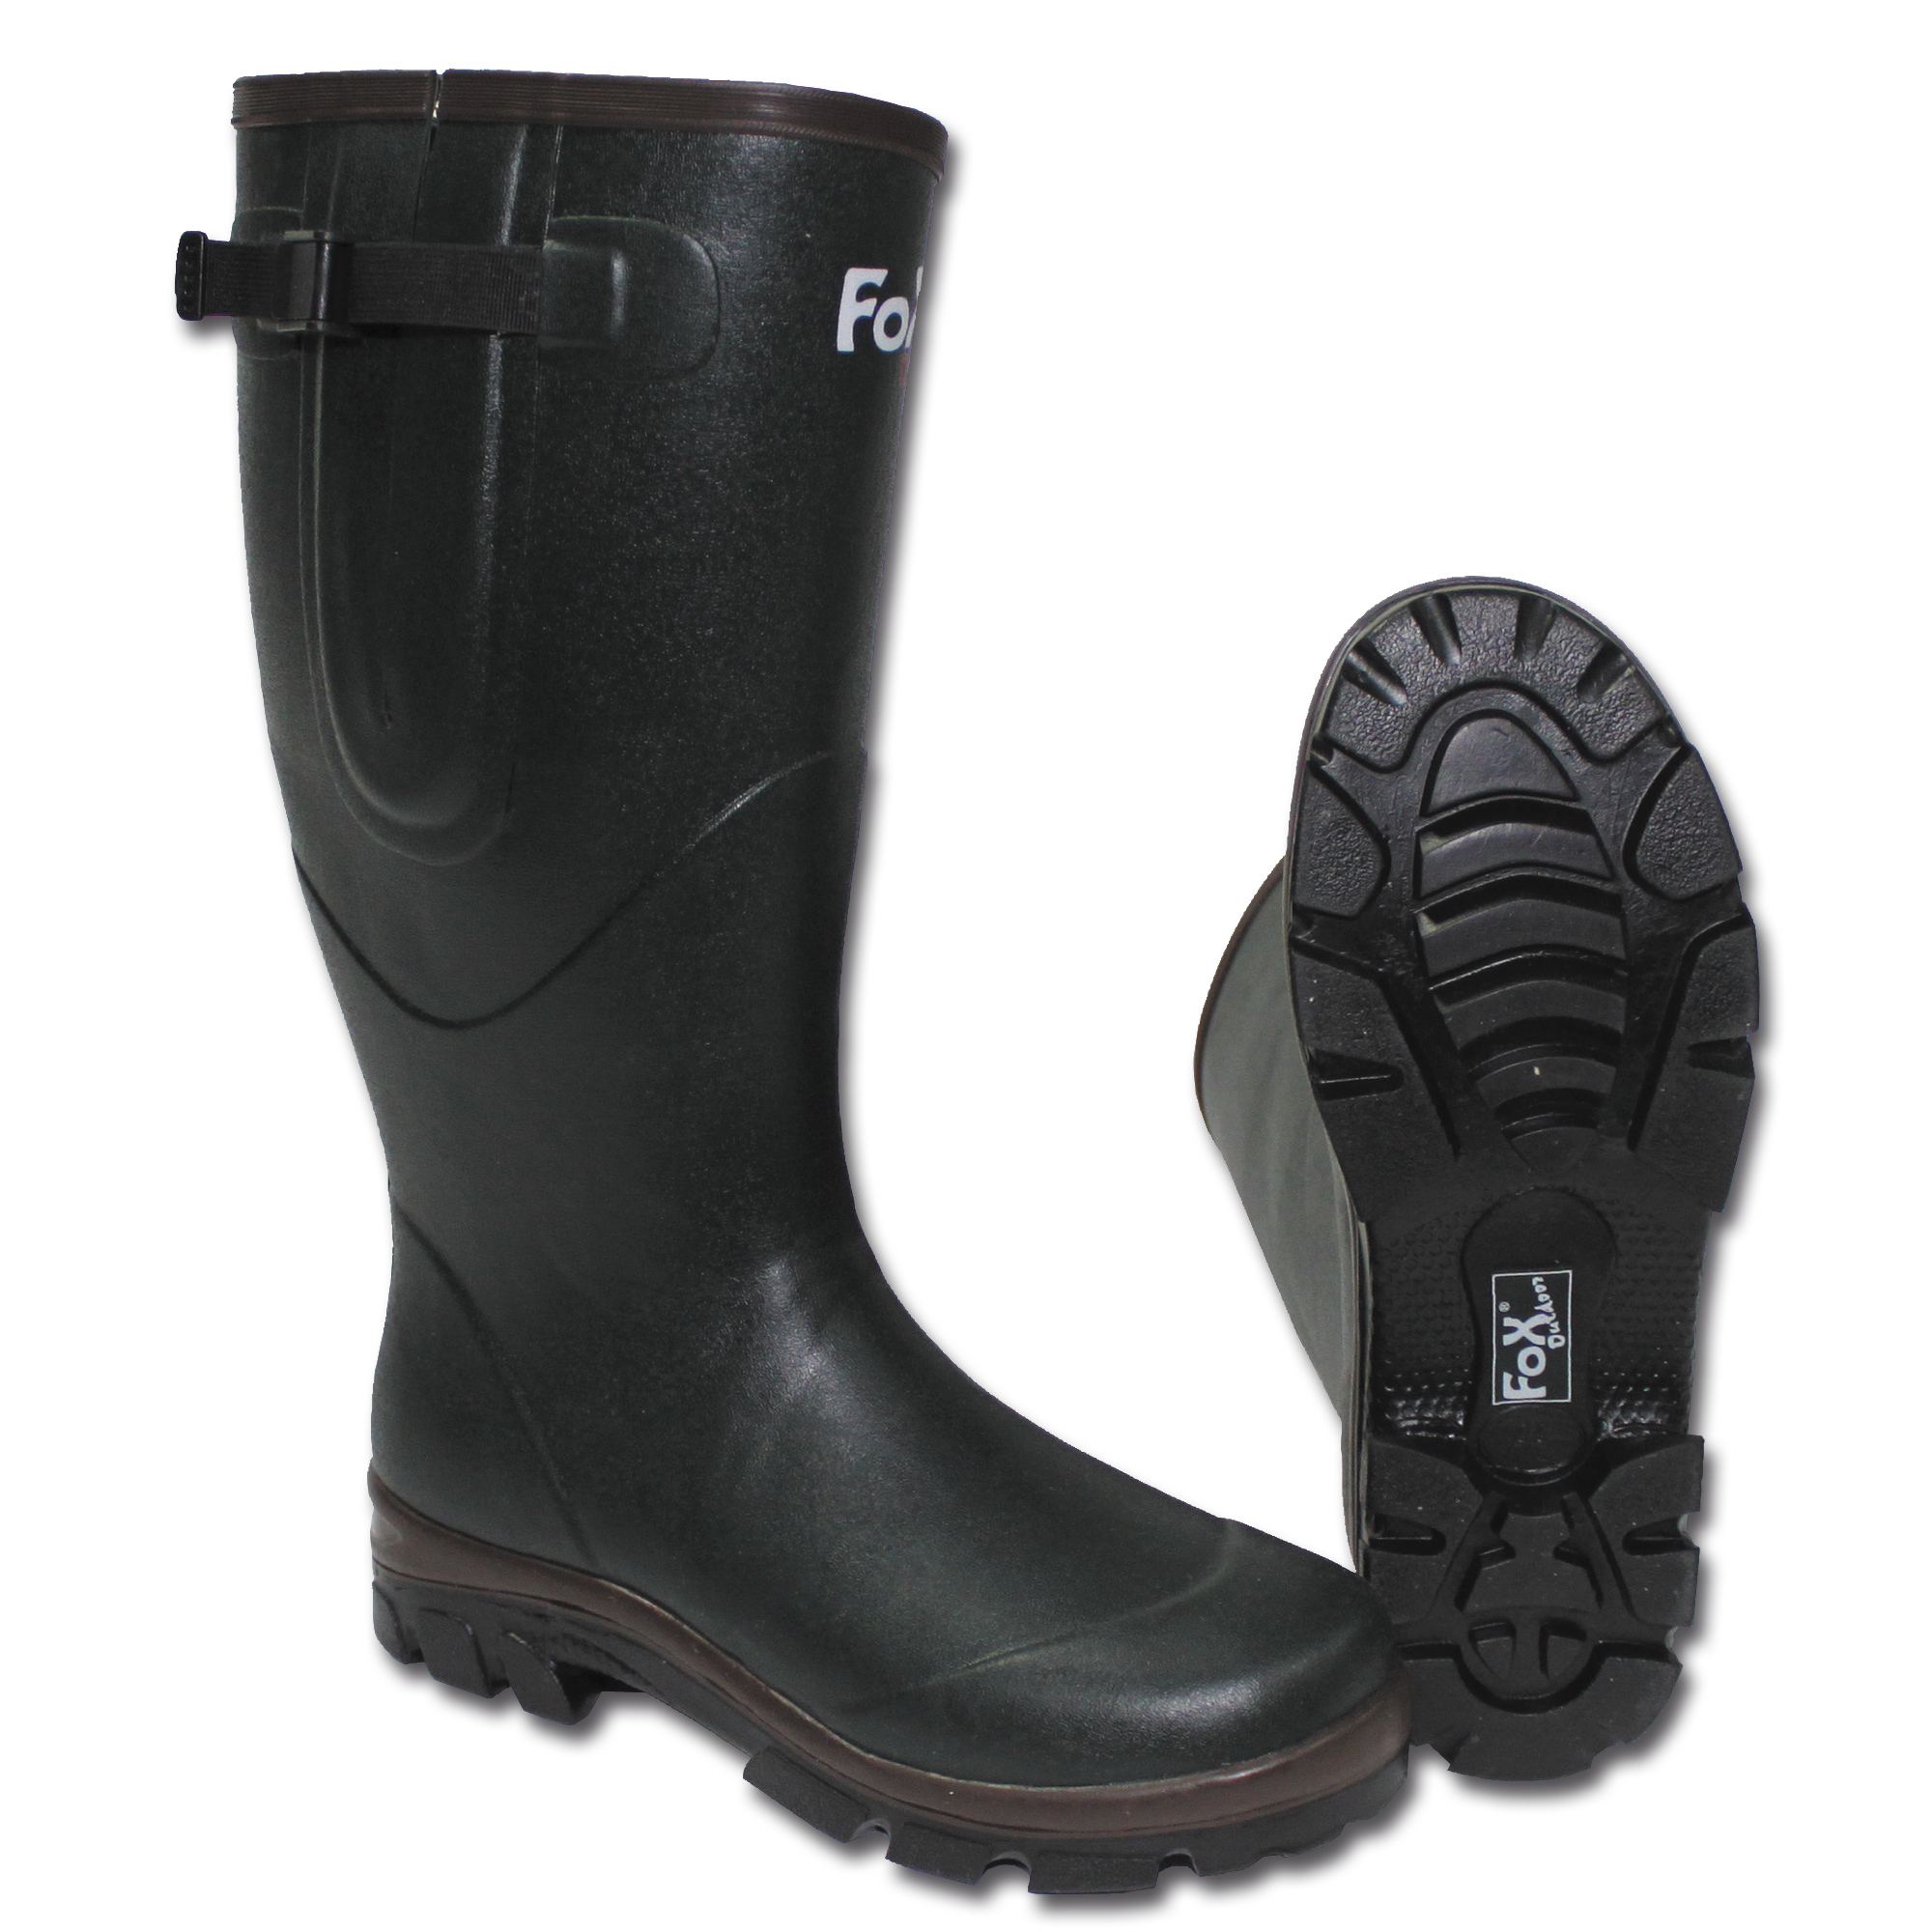 Rubber Boots Fox olive green